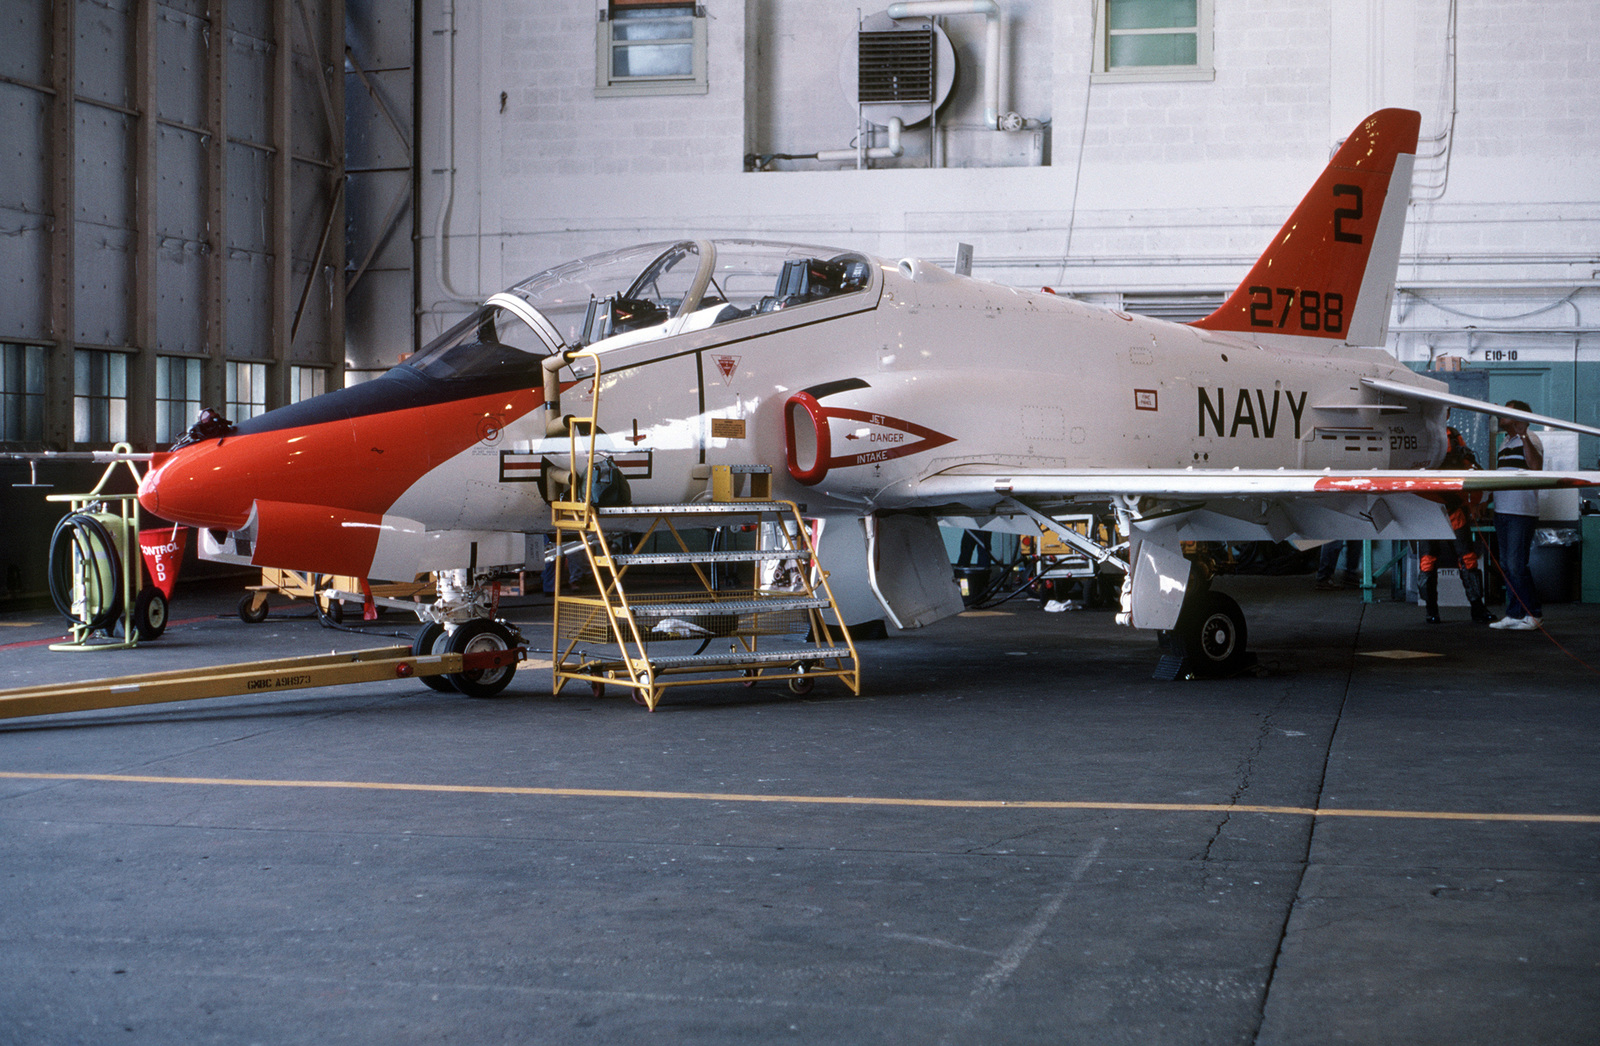 A test pilot checks the tail end of a T-45A Goshawk aircraft prior to an evaluation flight.  The Navy will eventually procure about 300 of these aircraft to replace the T-2C Buckeye and TA-4J Skyhawk trainer aircraft.  The T-45A, which is capable of landing aboard aircraft carriers, will be used for intermediate and advanced student pilot training